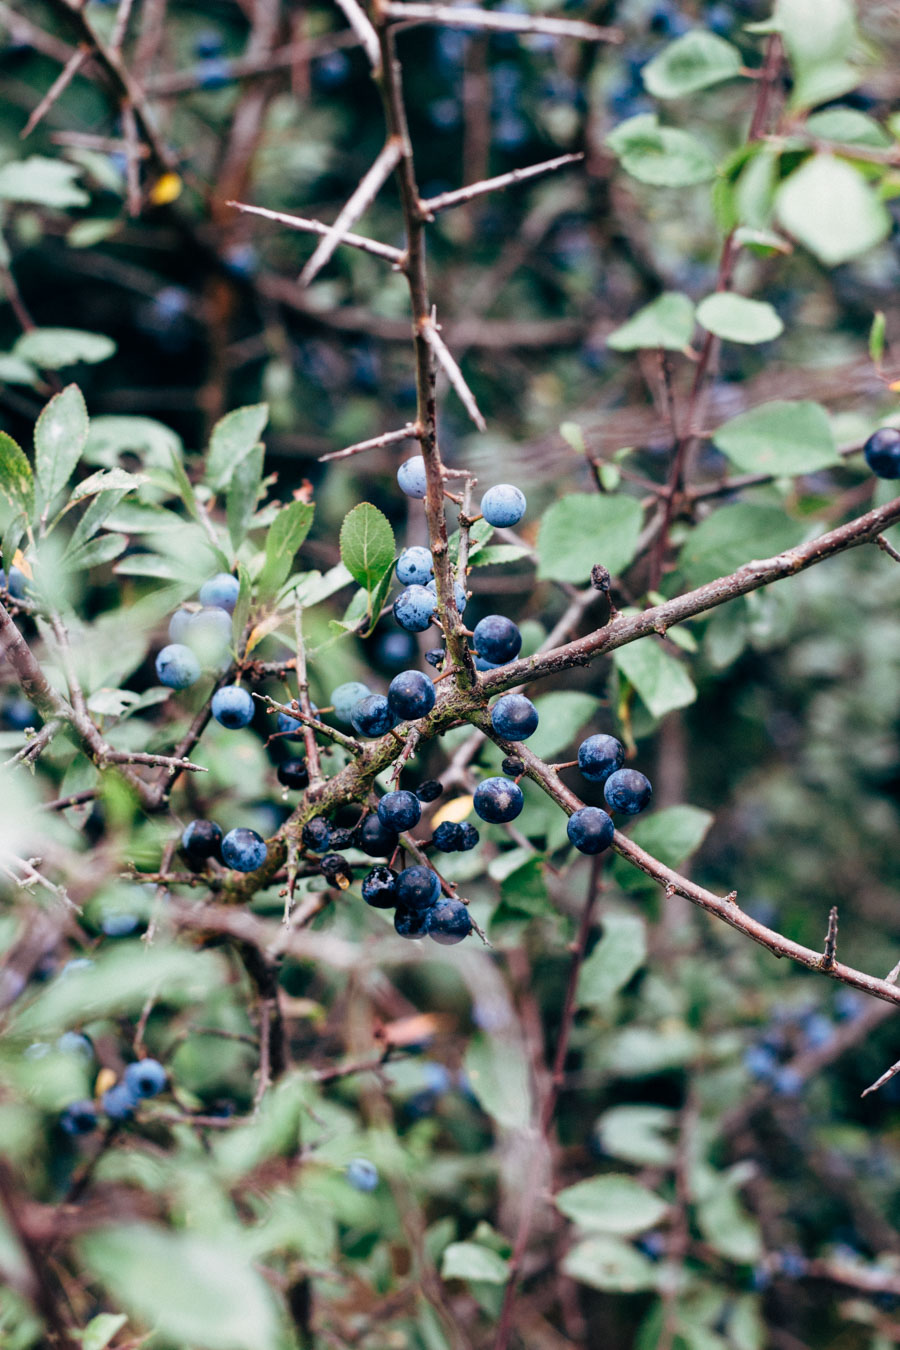 Hunting for sloes